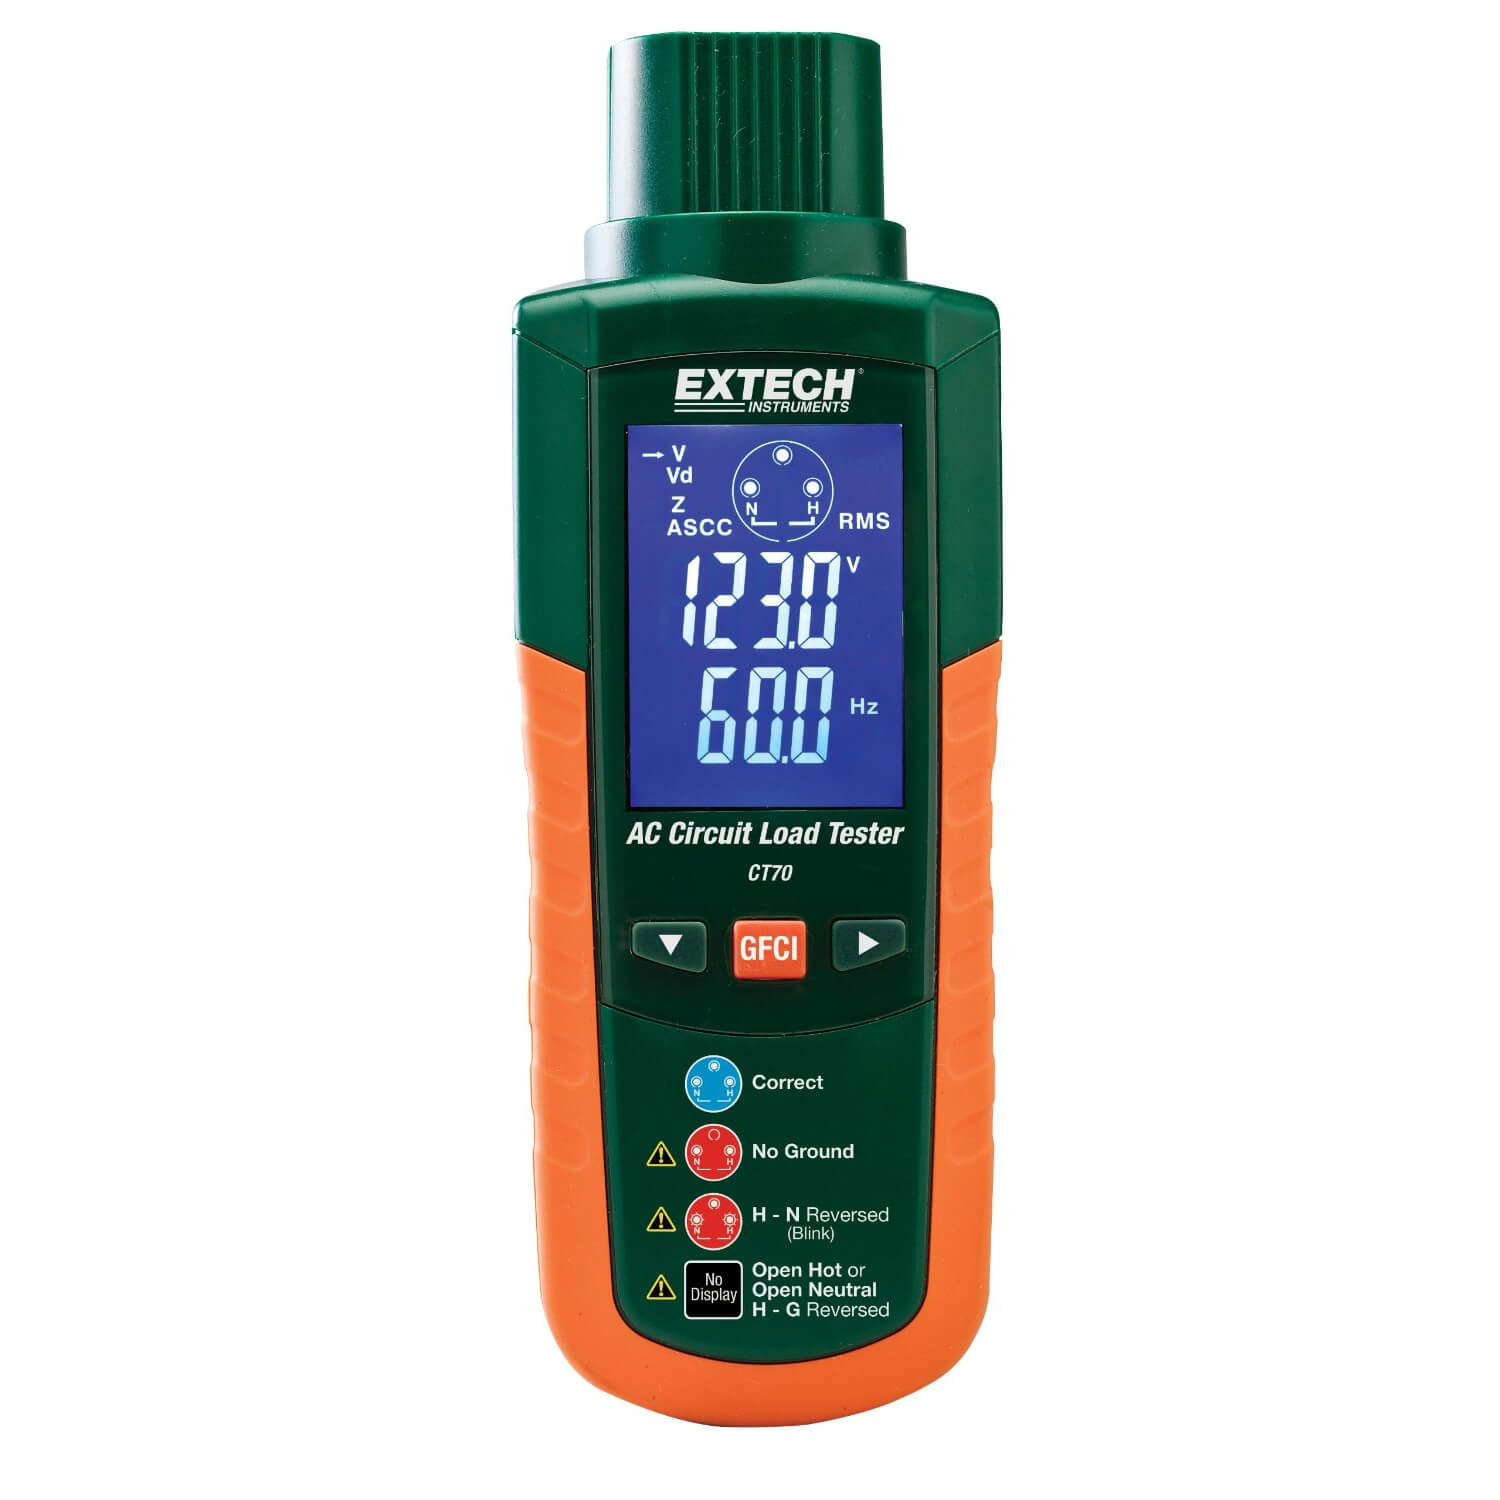 Extech CT70 Tester for AC Circuit Loads